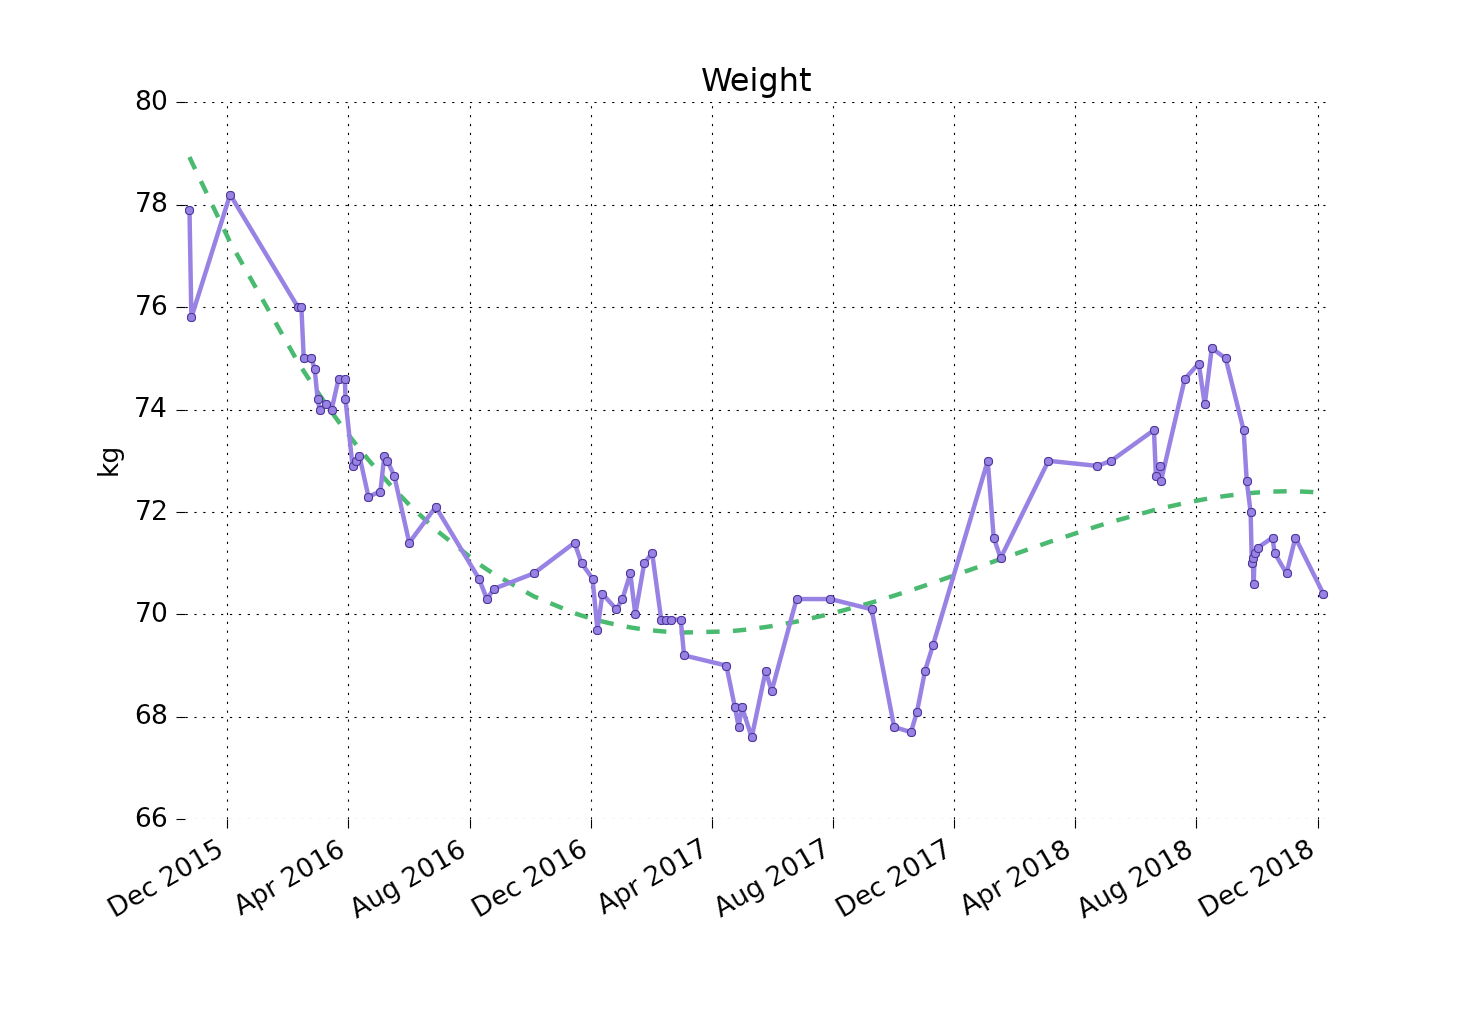 Generated weight chart